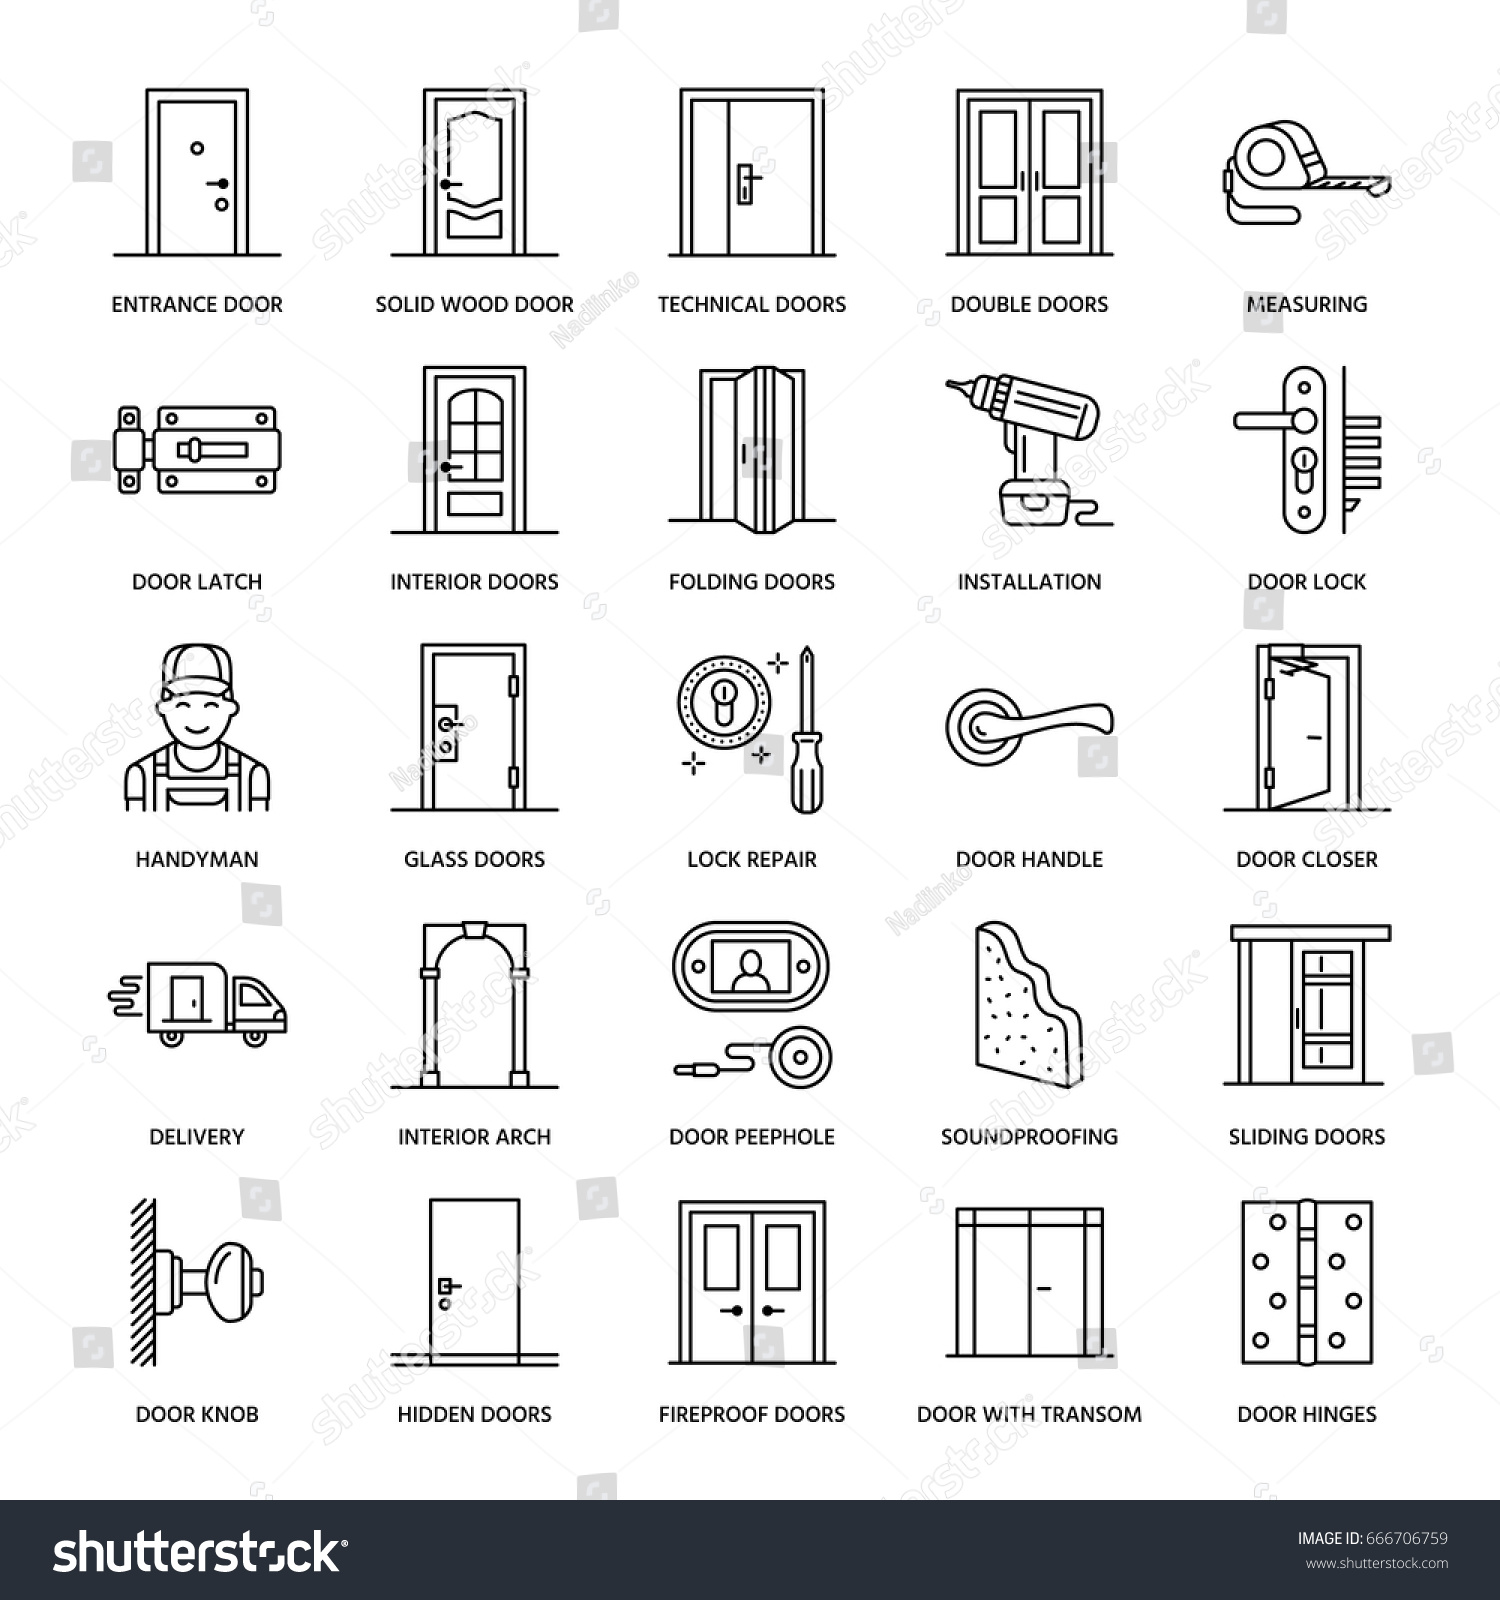 Doors installation repair line icons handle 666706759 shutterstock for Interior doors installation services